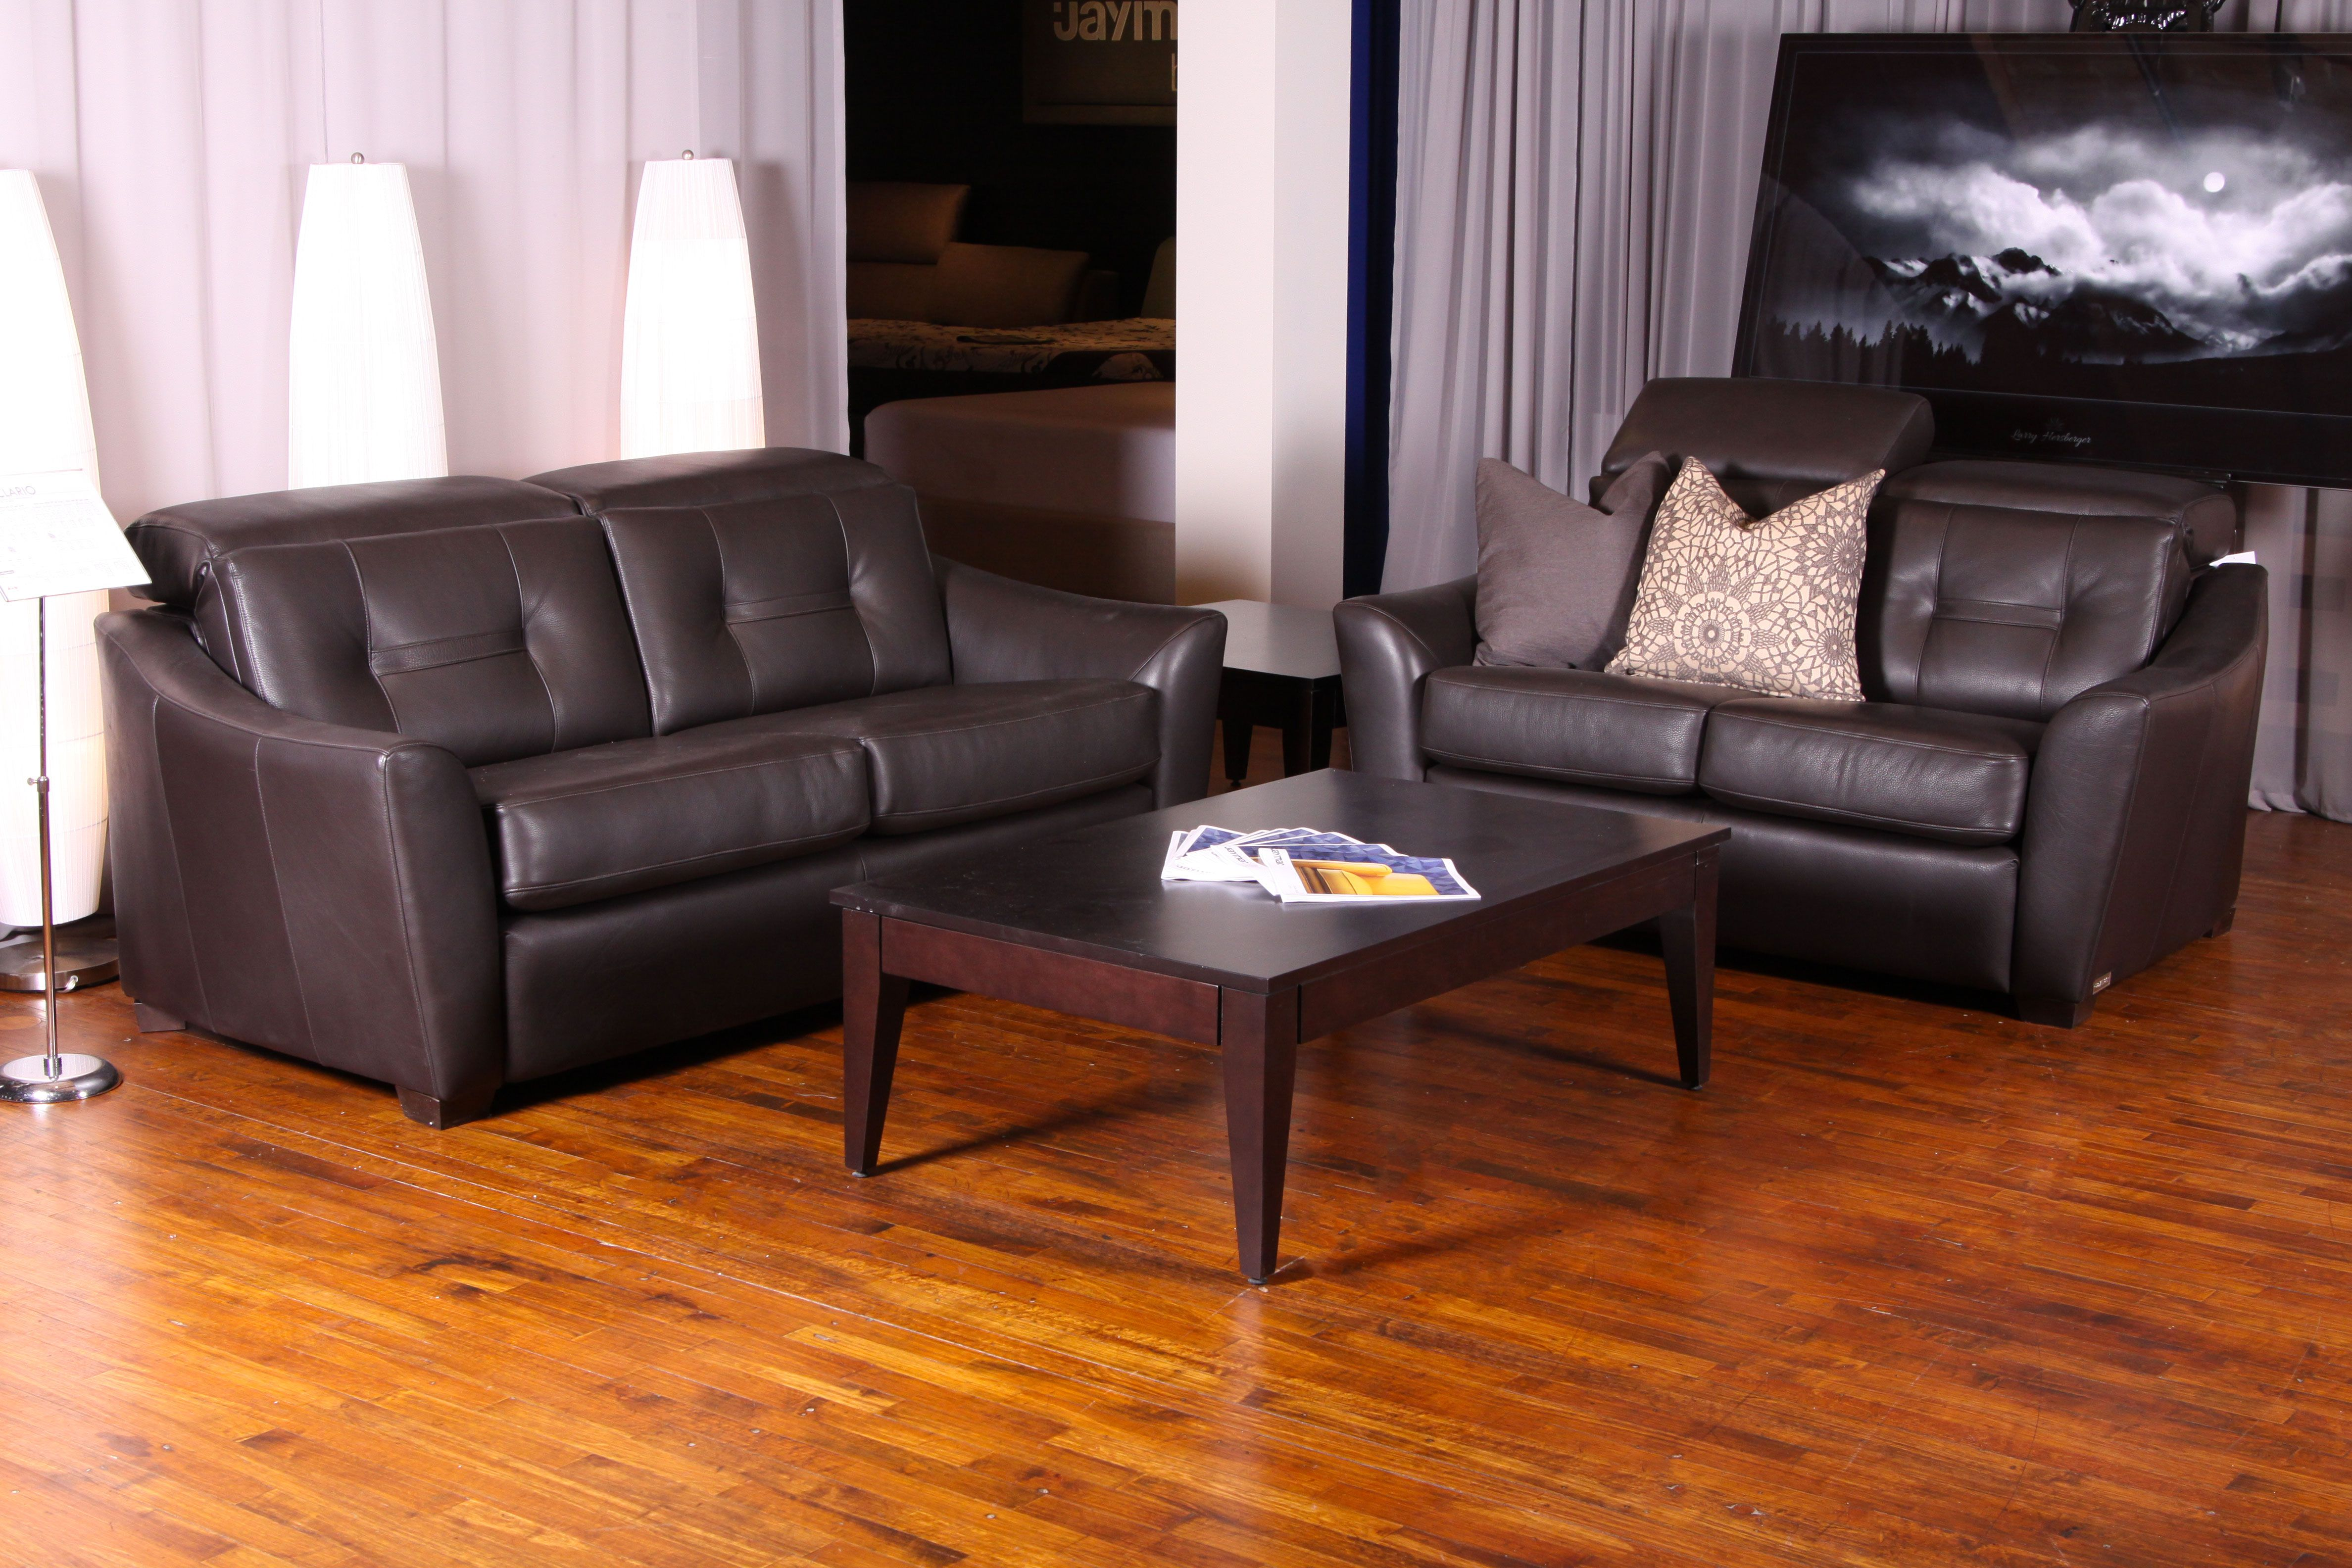 Clario Leather Sofa With Retractable Head Rest And Motorized Reclining Mechanism Sofa Made In Canada Mobilier Salon